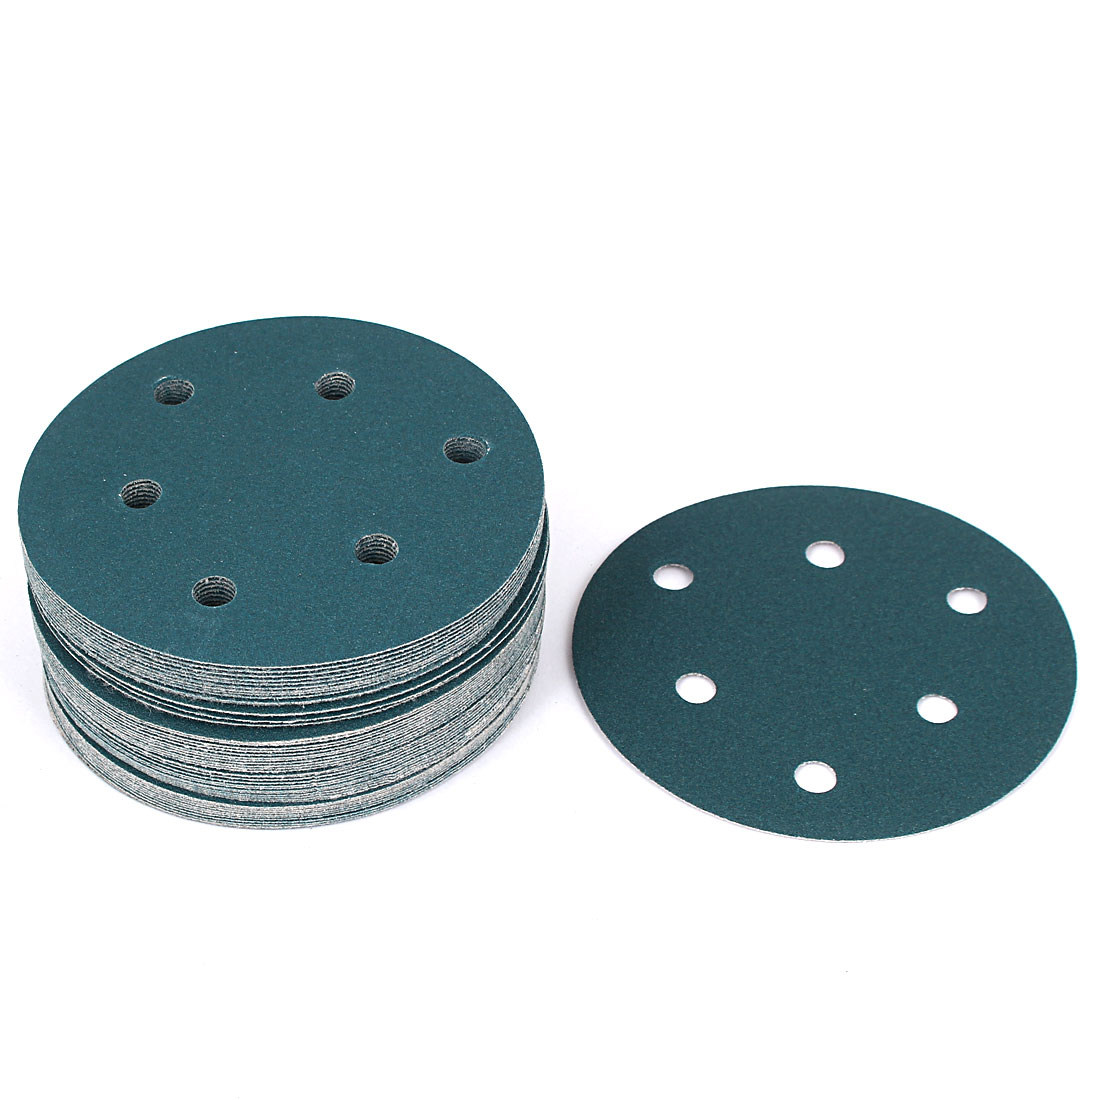 "5"" Sandpaper Auto Car Paint Polishing Sanding Disc Vlcro 6 Holes 150 Grit 50pcs"